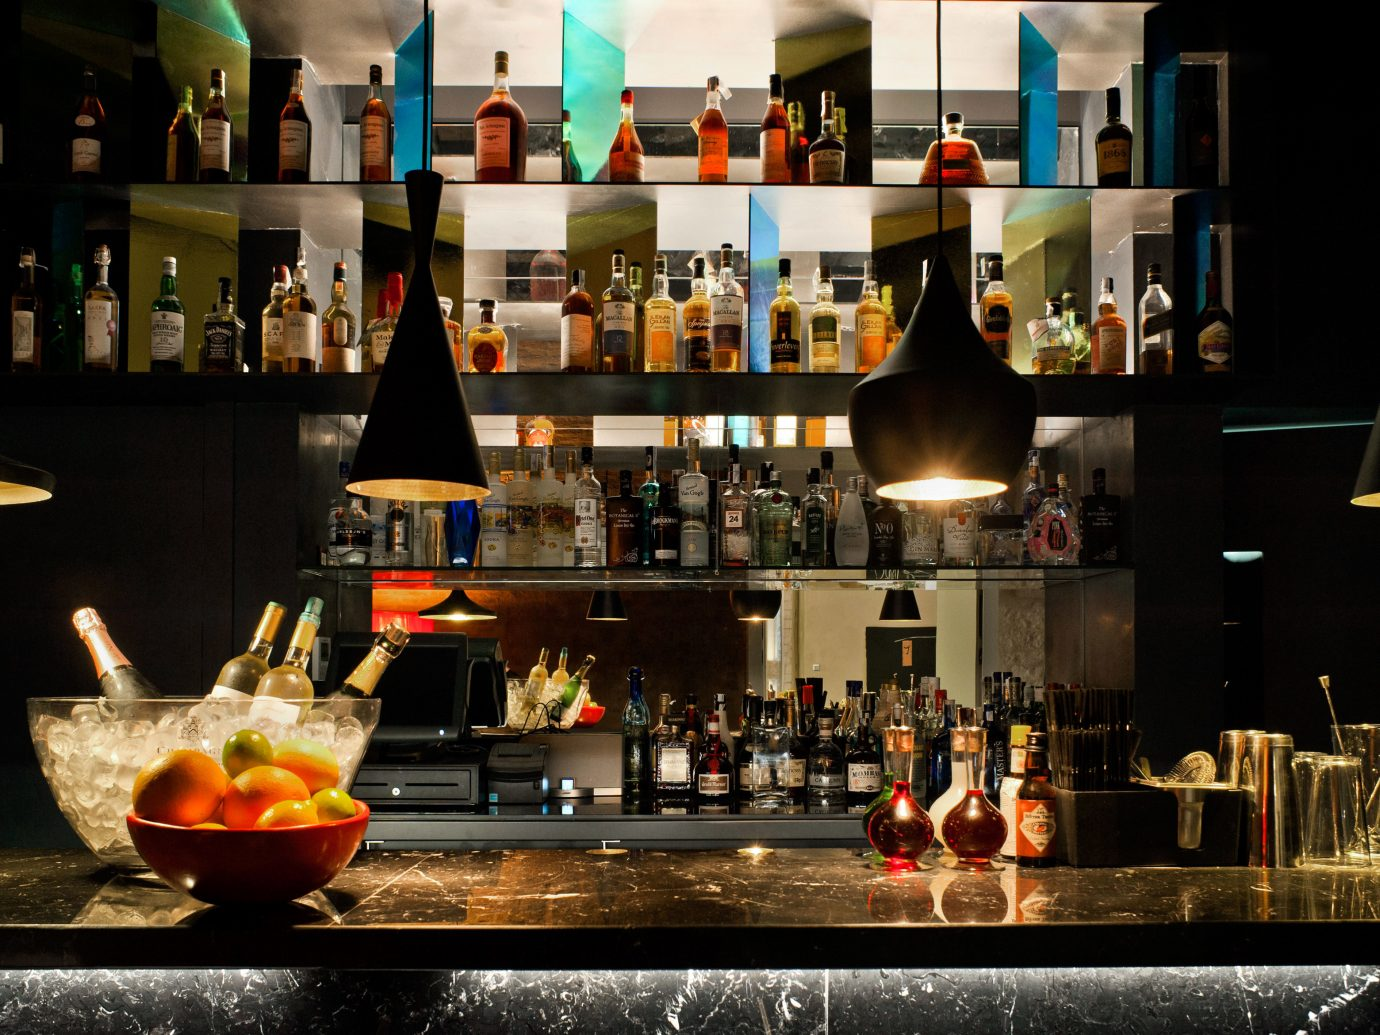 Bar Barcelona Boutique Boutique Hotels City Drink Hip Hotels Luxury Modern Nightlife Spain indoor counter restaurant distilled beverage several